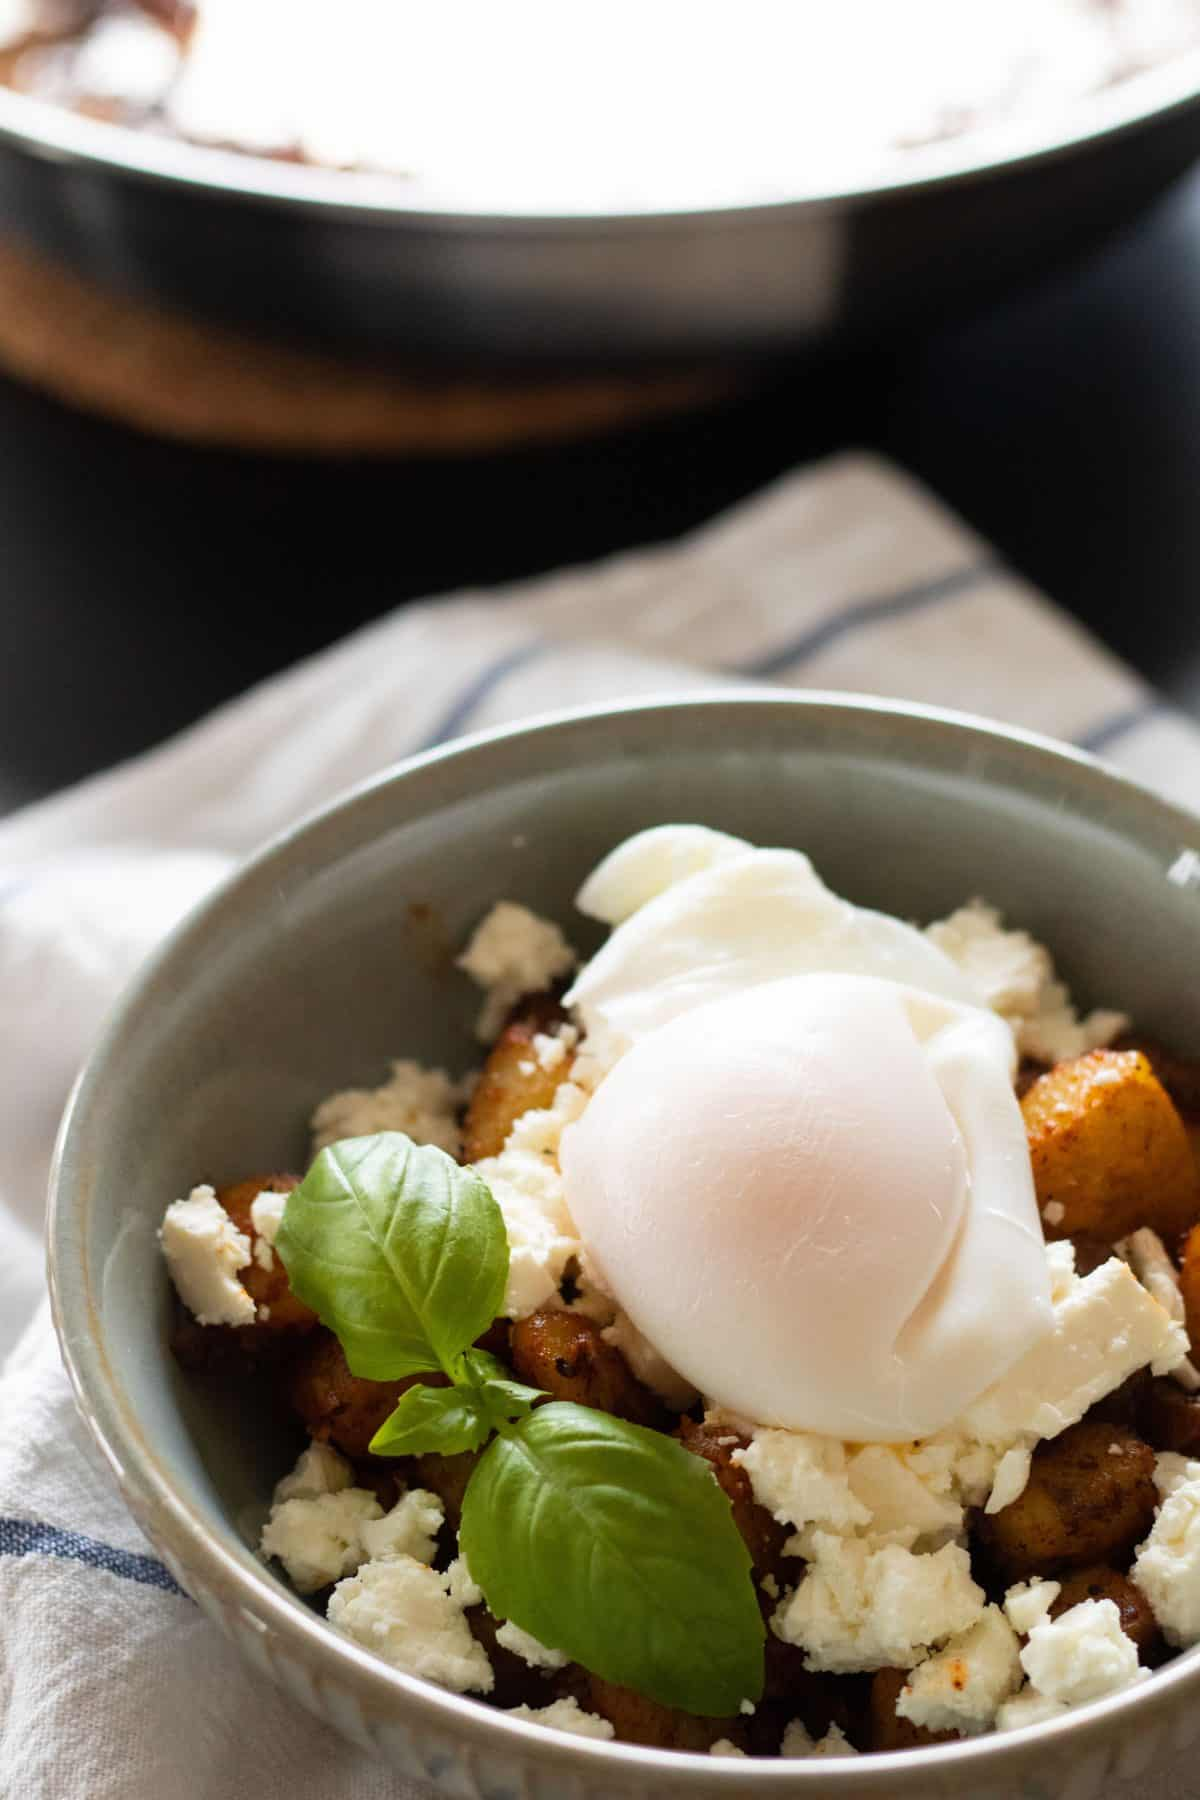 side view of a bowl with fried potatoes, feta cheese and a poached egg